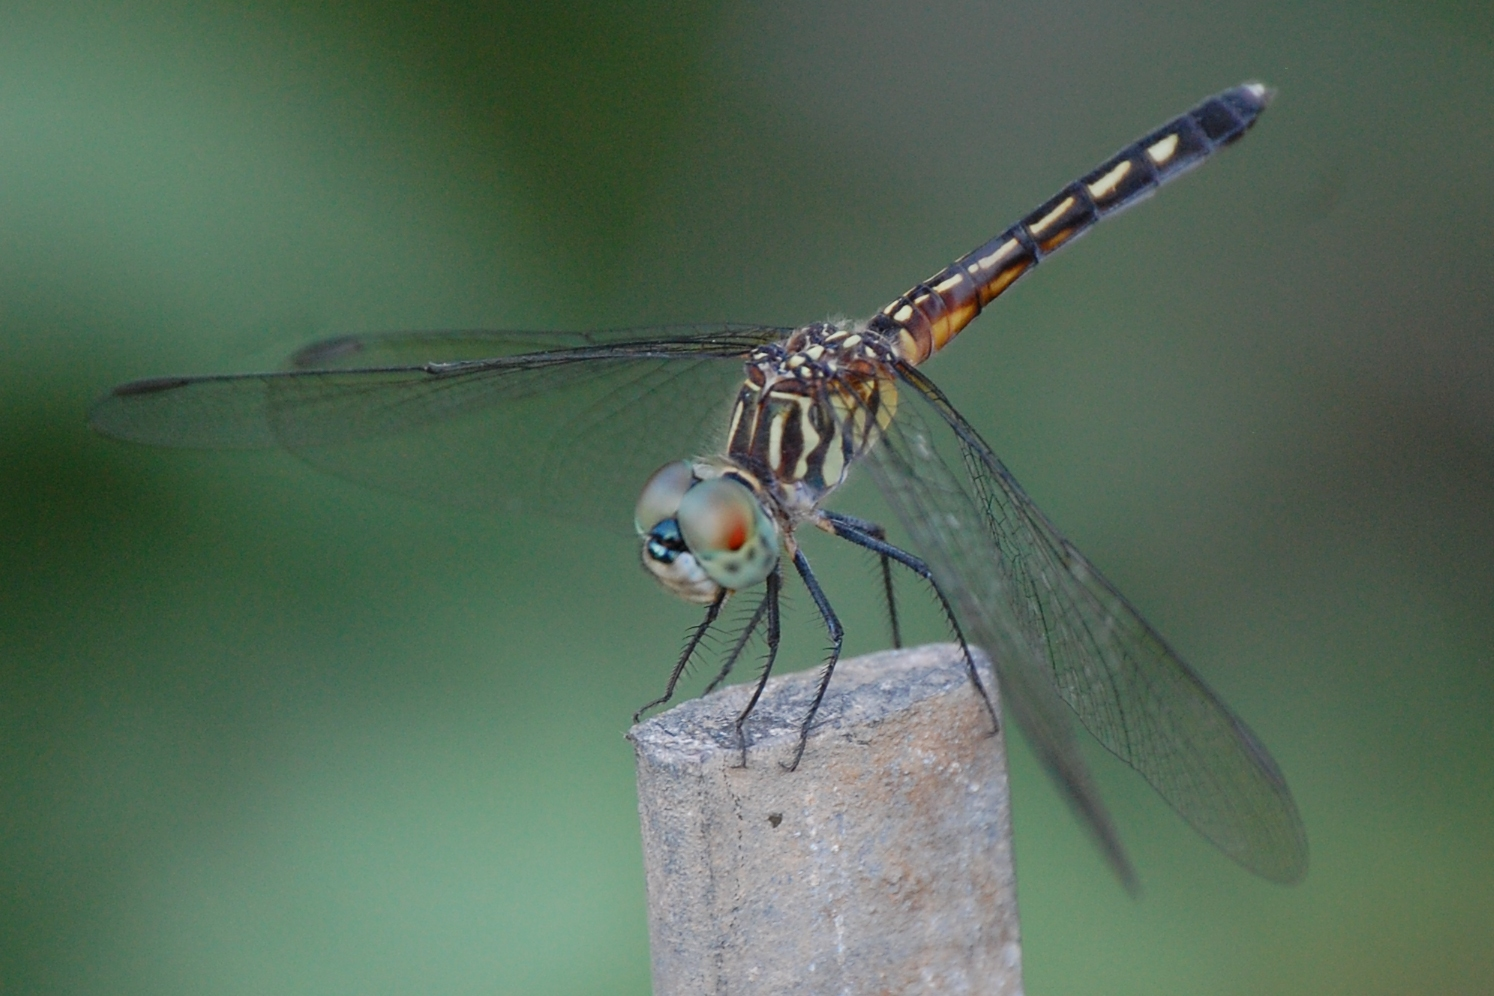 Resources, Google, and Dragonflies